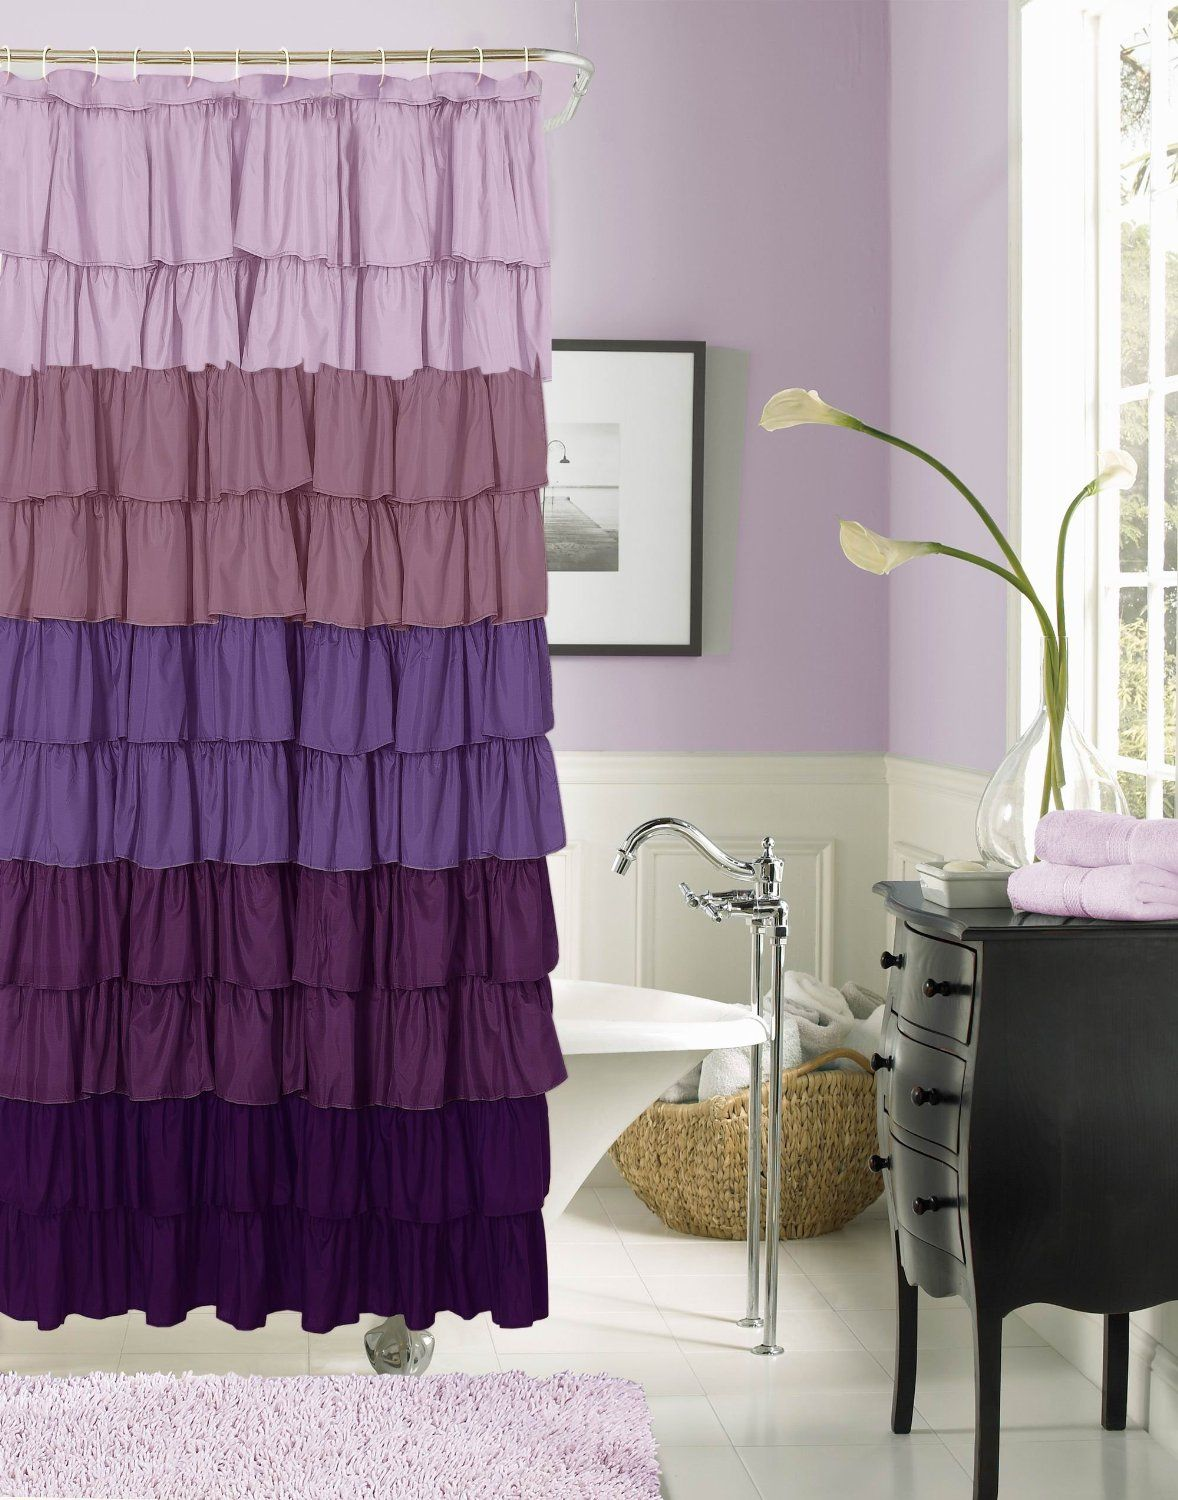 Bathroom Sets Design Ideas with Images Home Ruffled Shower